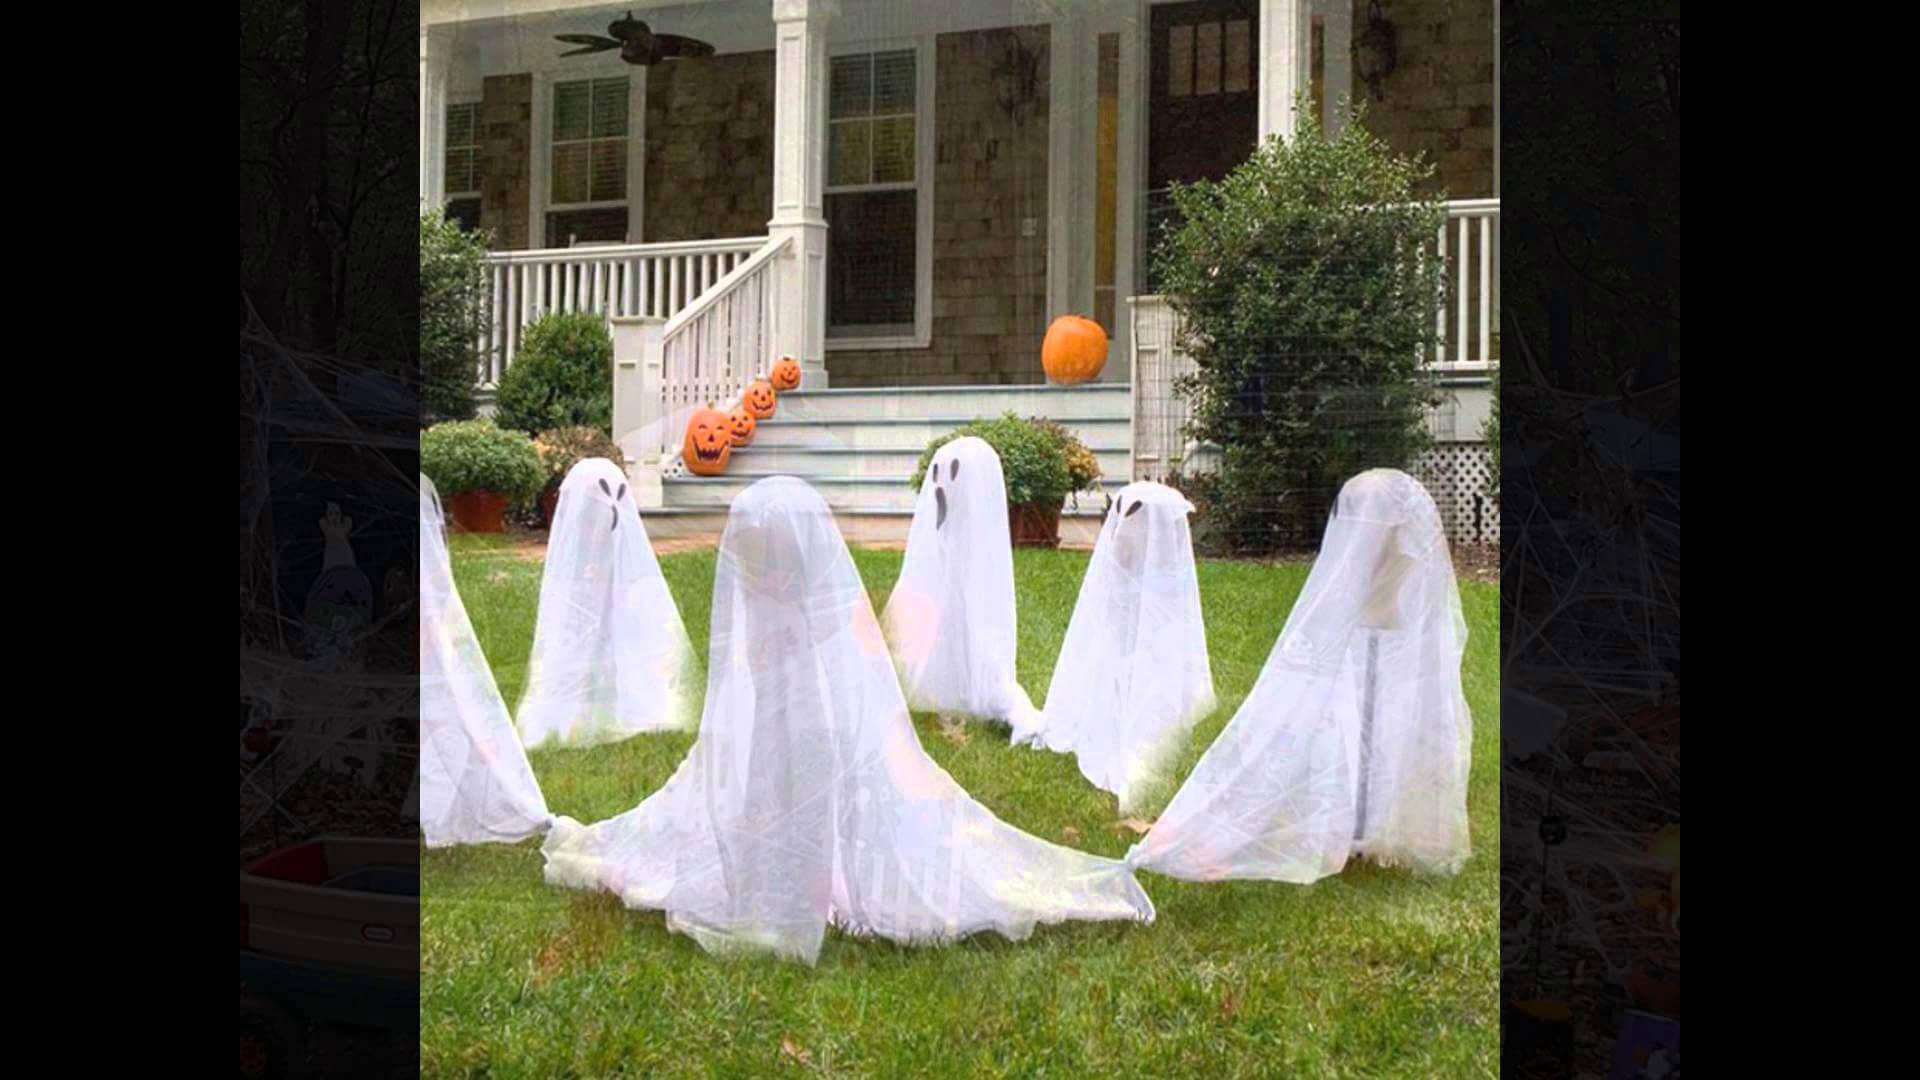 Ghost get together in the garden Halloween decoration